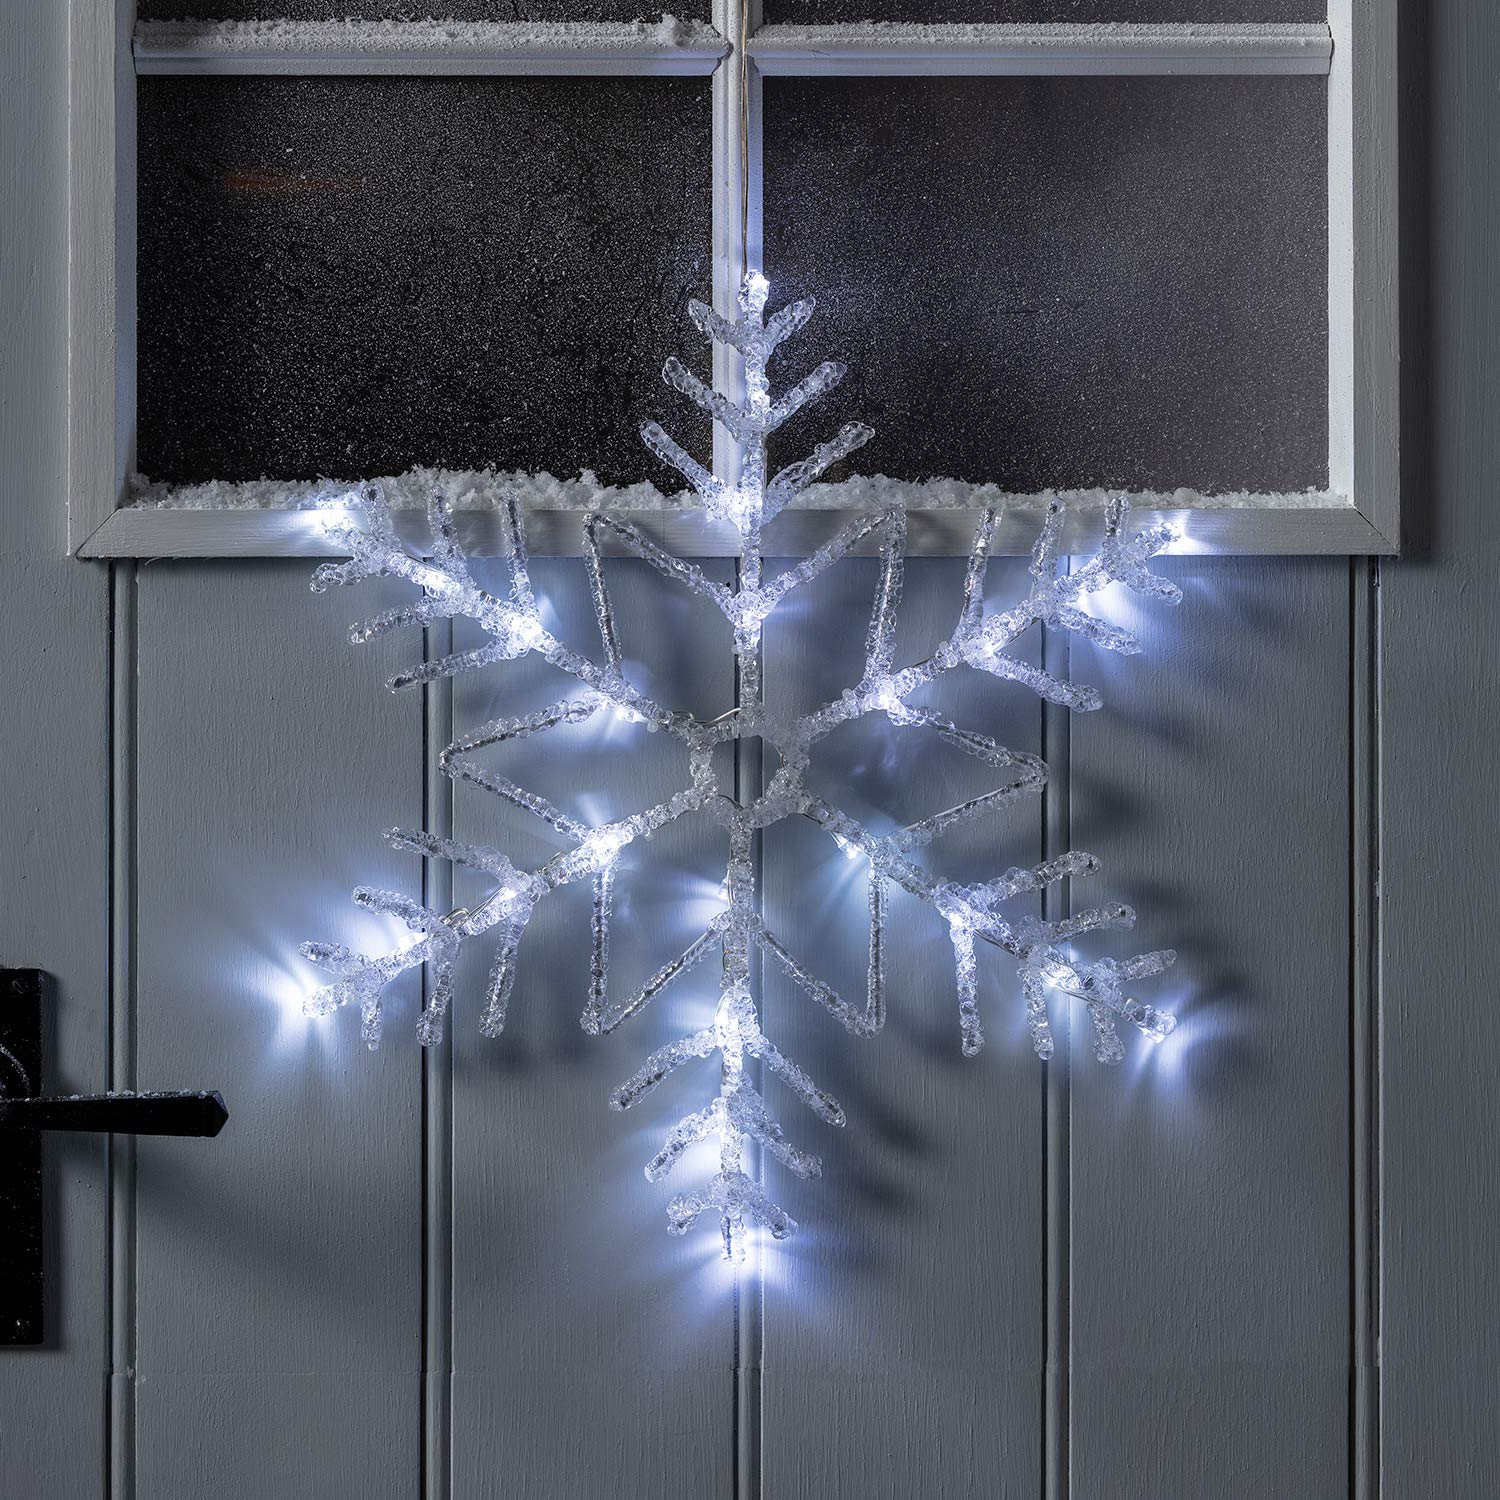 "Lights4fun Inc. 16"" White LED Battery Operated Snowflake Outdoor Christmas Window Light Decoration"